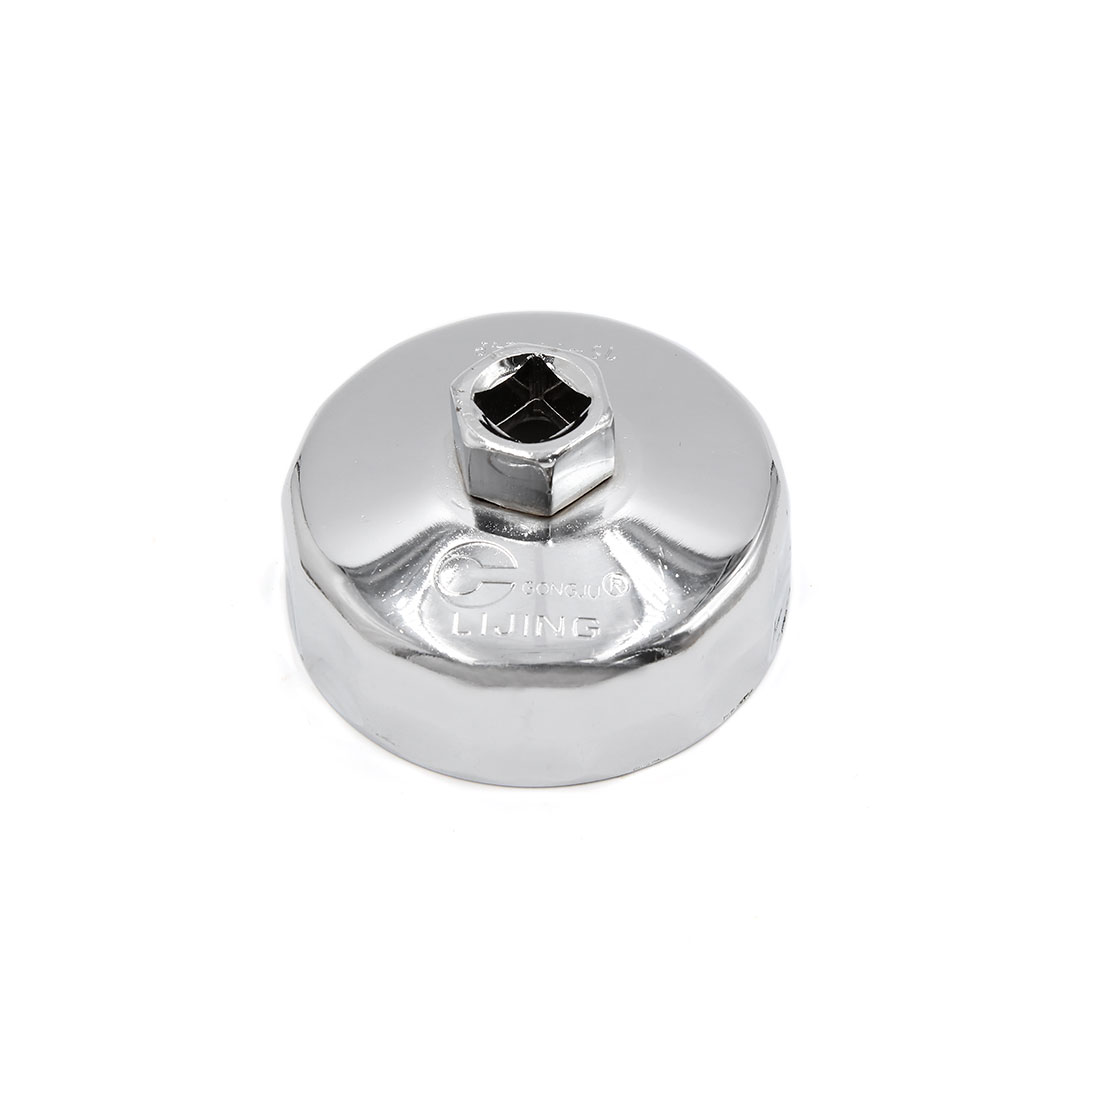 Silver Tone Steel 74.3mm Inner Dia 14 Flutes Car Oil Filter Cap Wrench Socket Remover